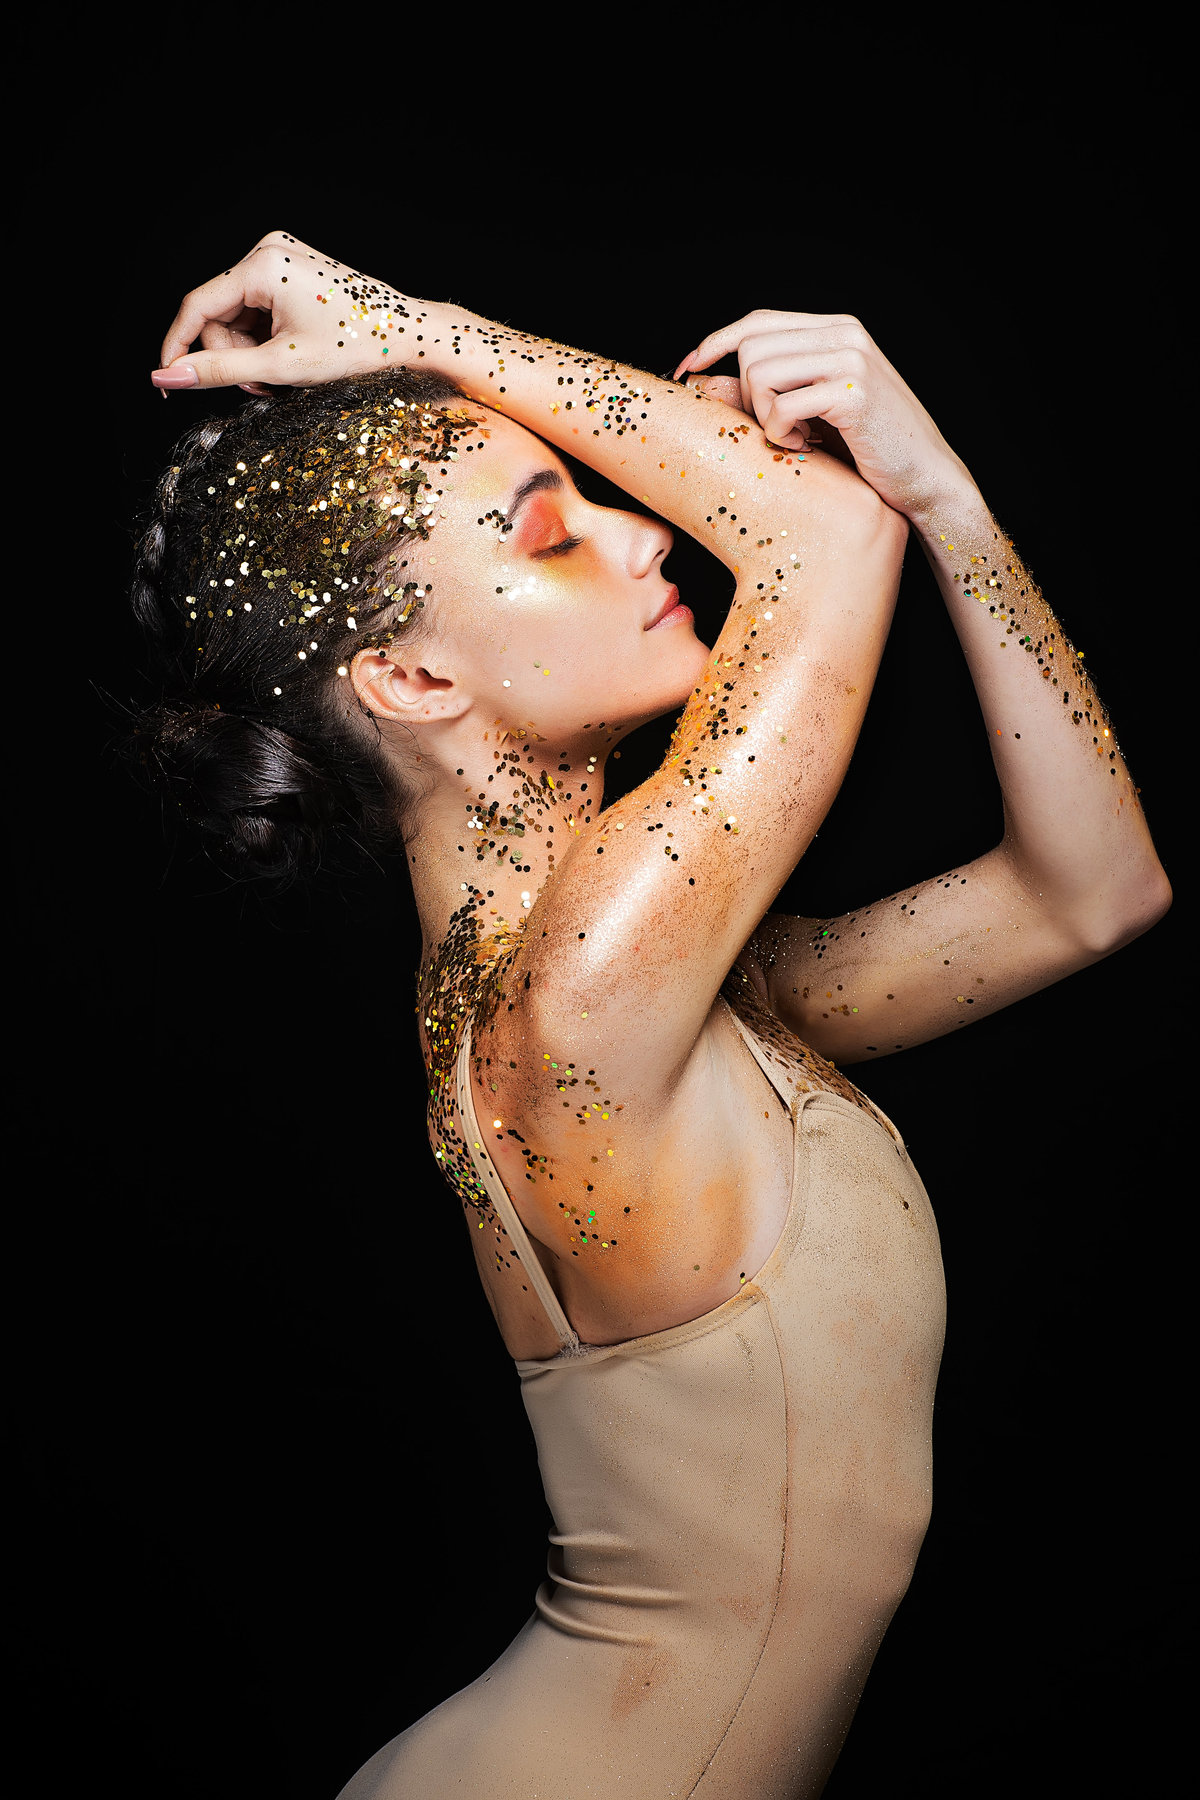 dancer covered in gold glitter in pose